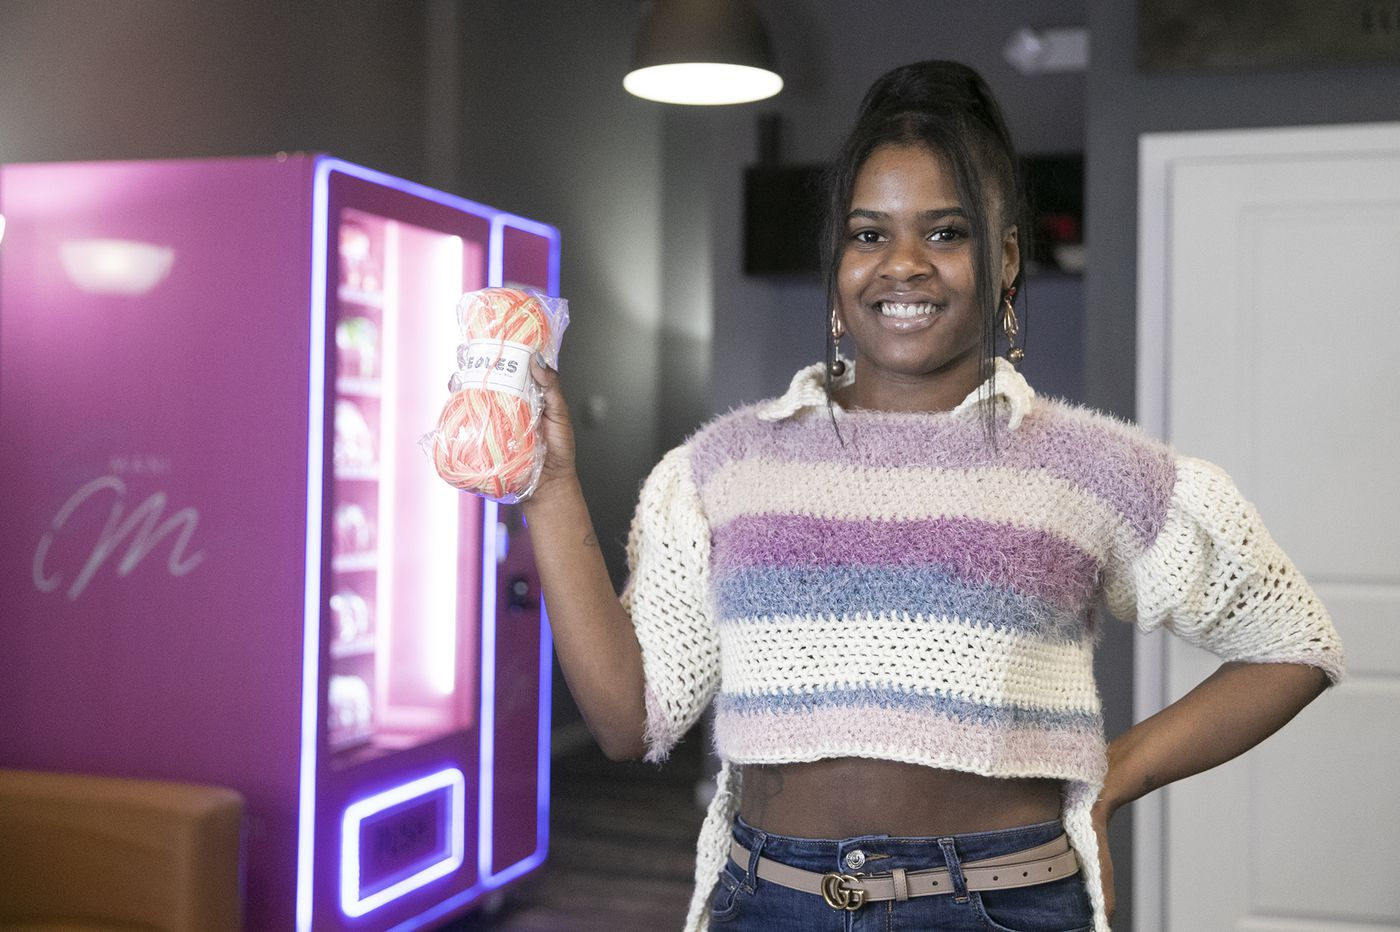 A North Philly crochet designer has made a yarn vending machine part of her craft